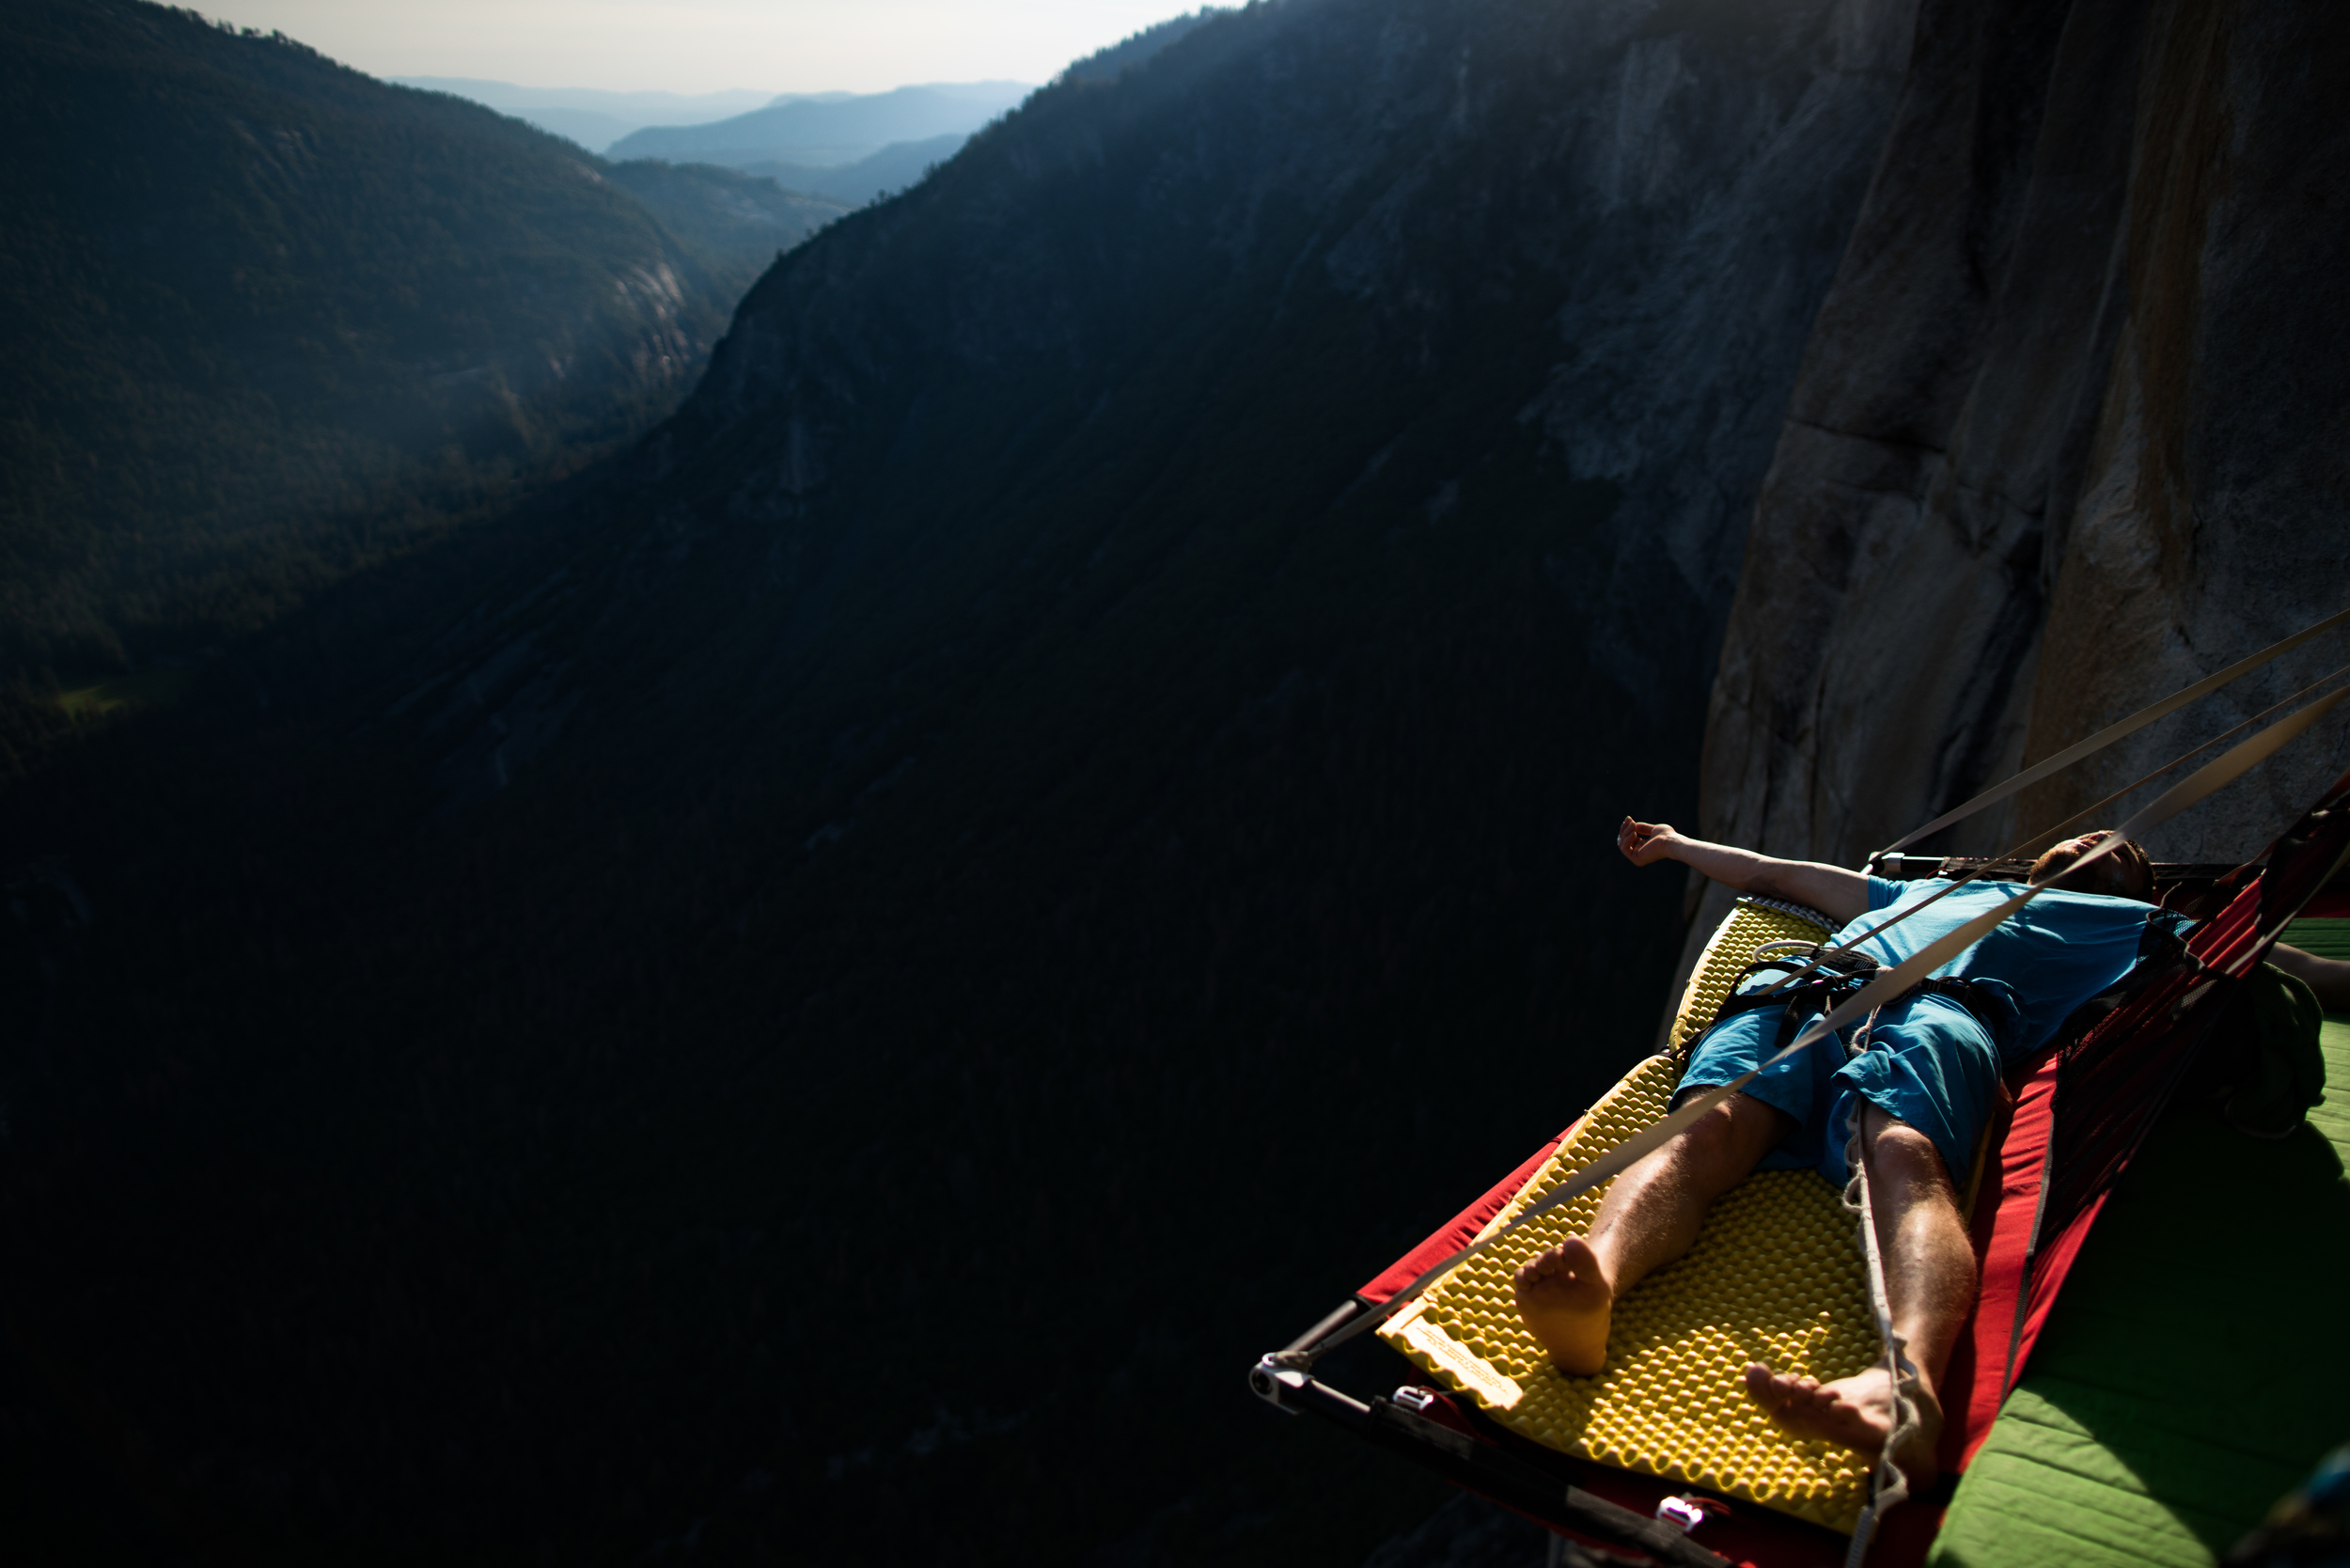 Lastly I'm working on a personal film including some footage I took on El Cap while Greg and Mike were sending El Corazon. Stay tuned...for I'm not sure when...not soon. Maybe never.